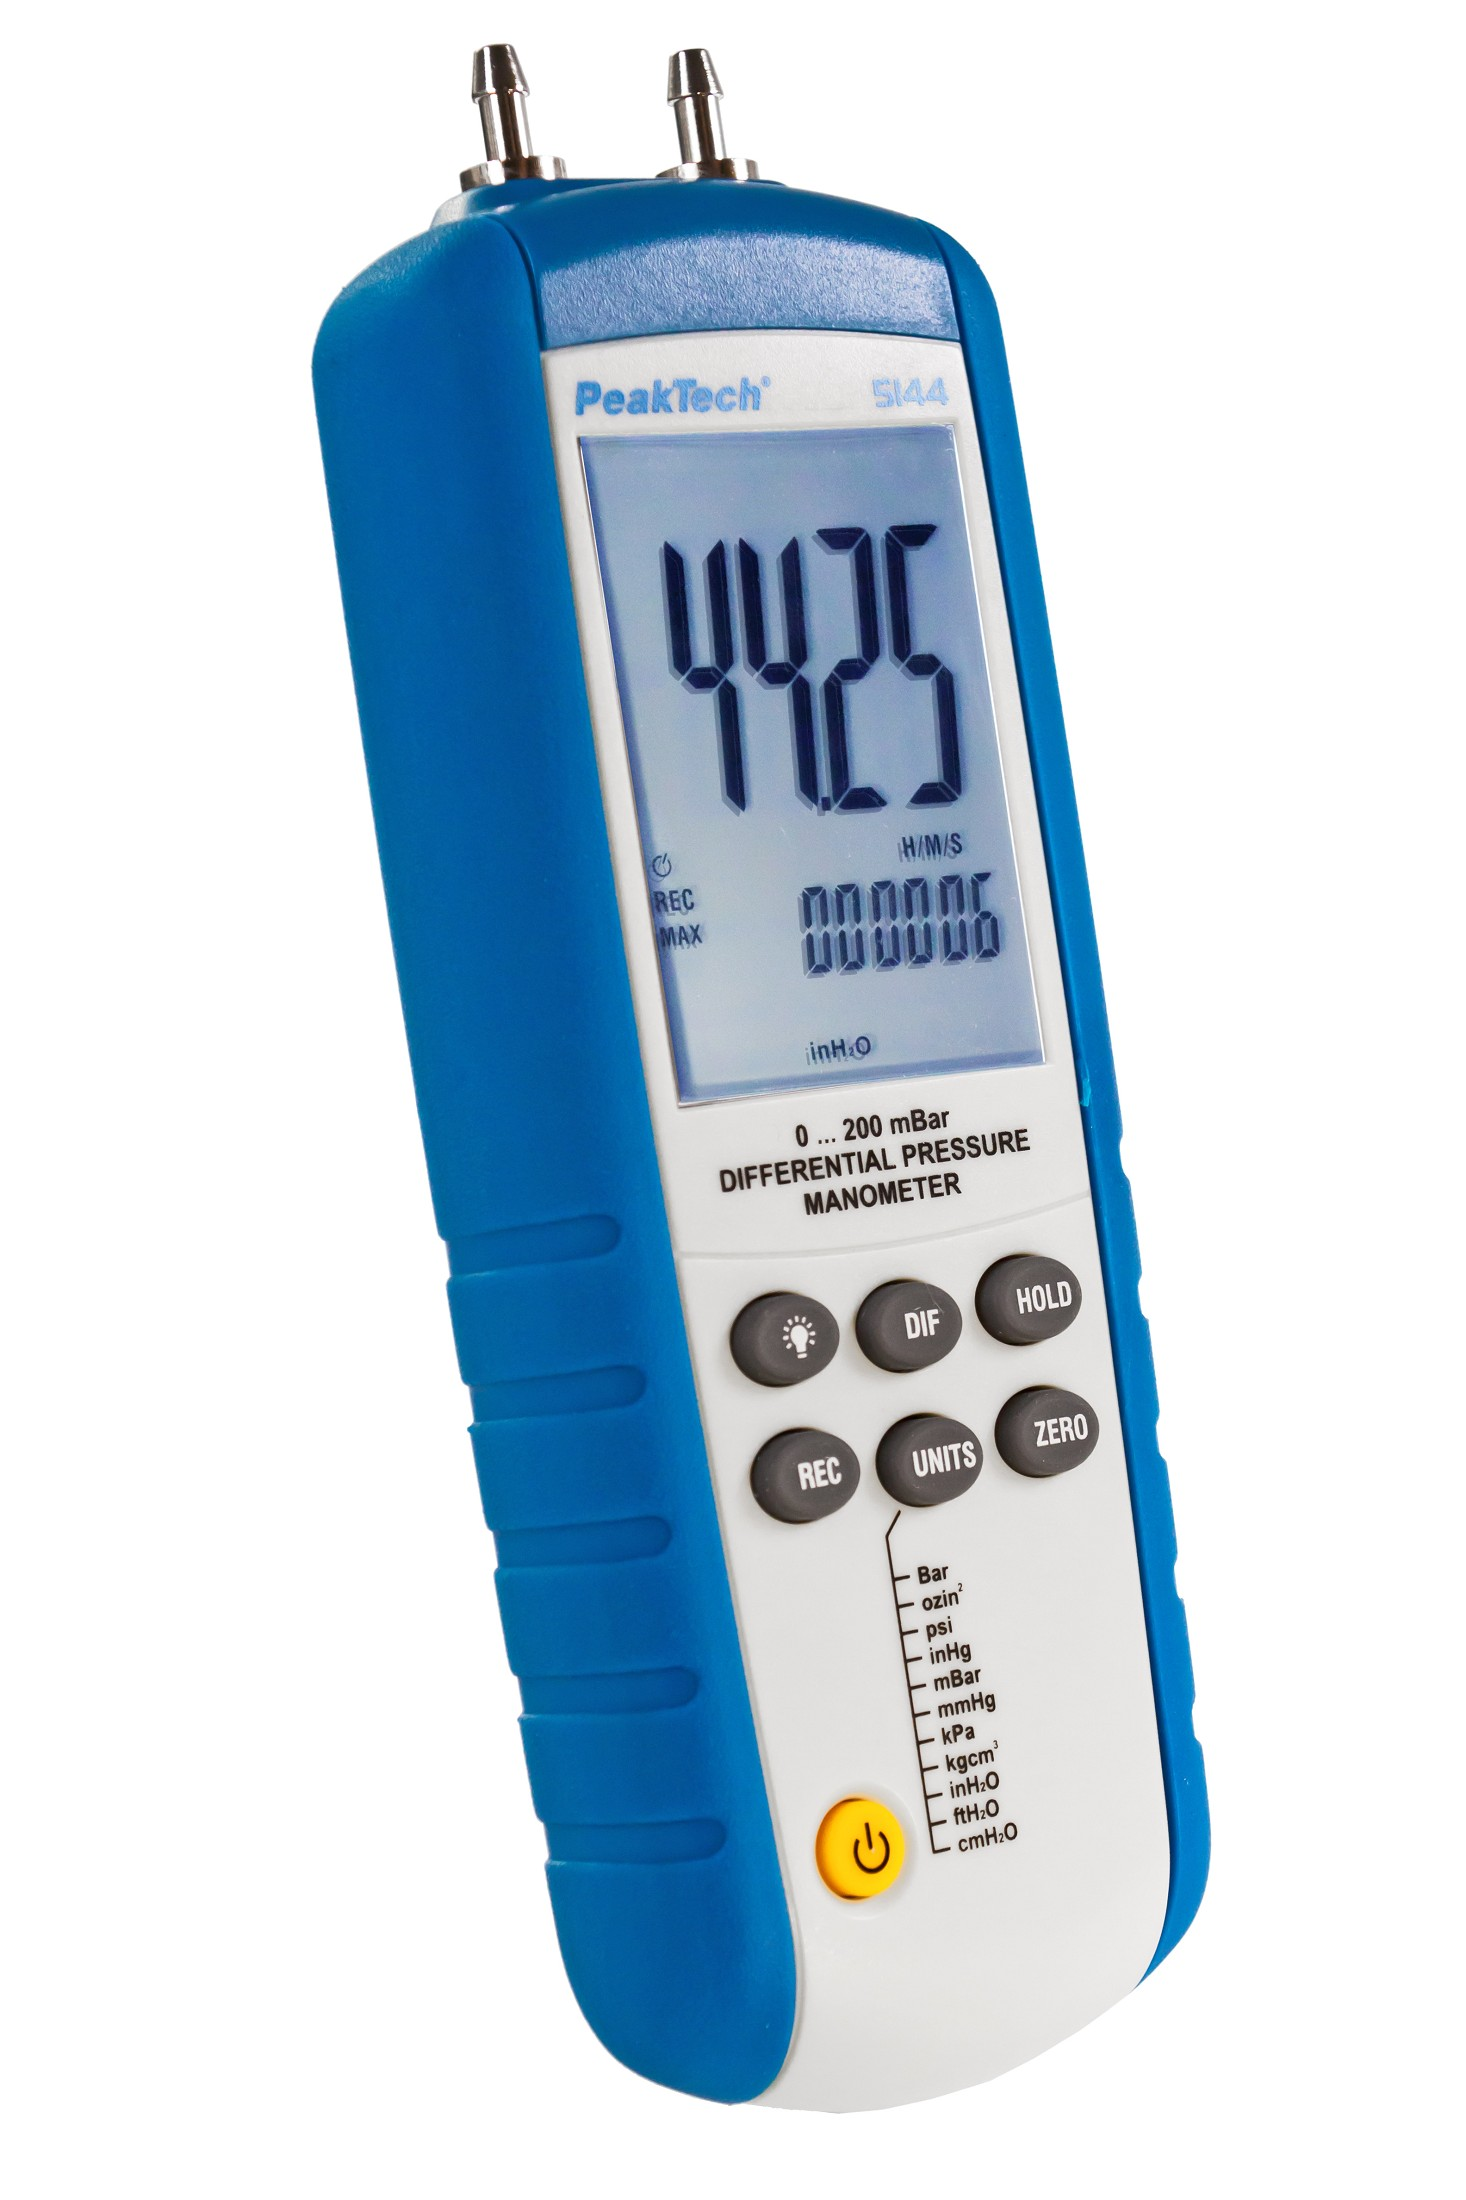 «PeakTech® P 5144» Differential pressure Meter 0...200 mbar with USB